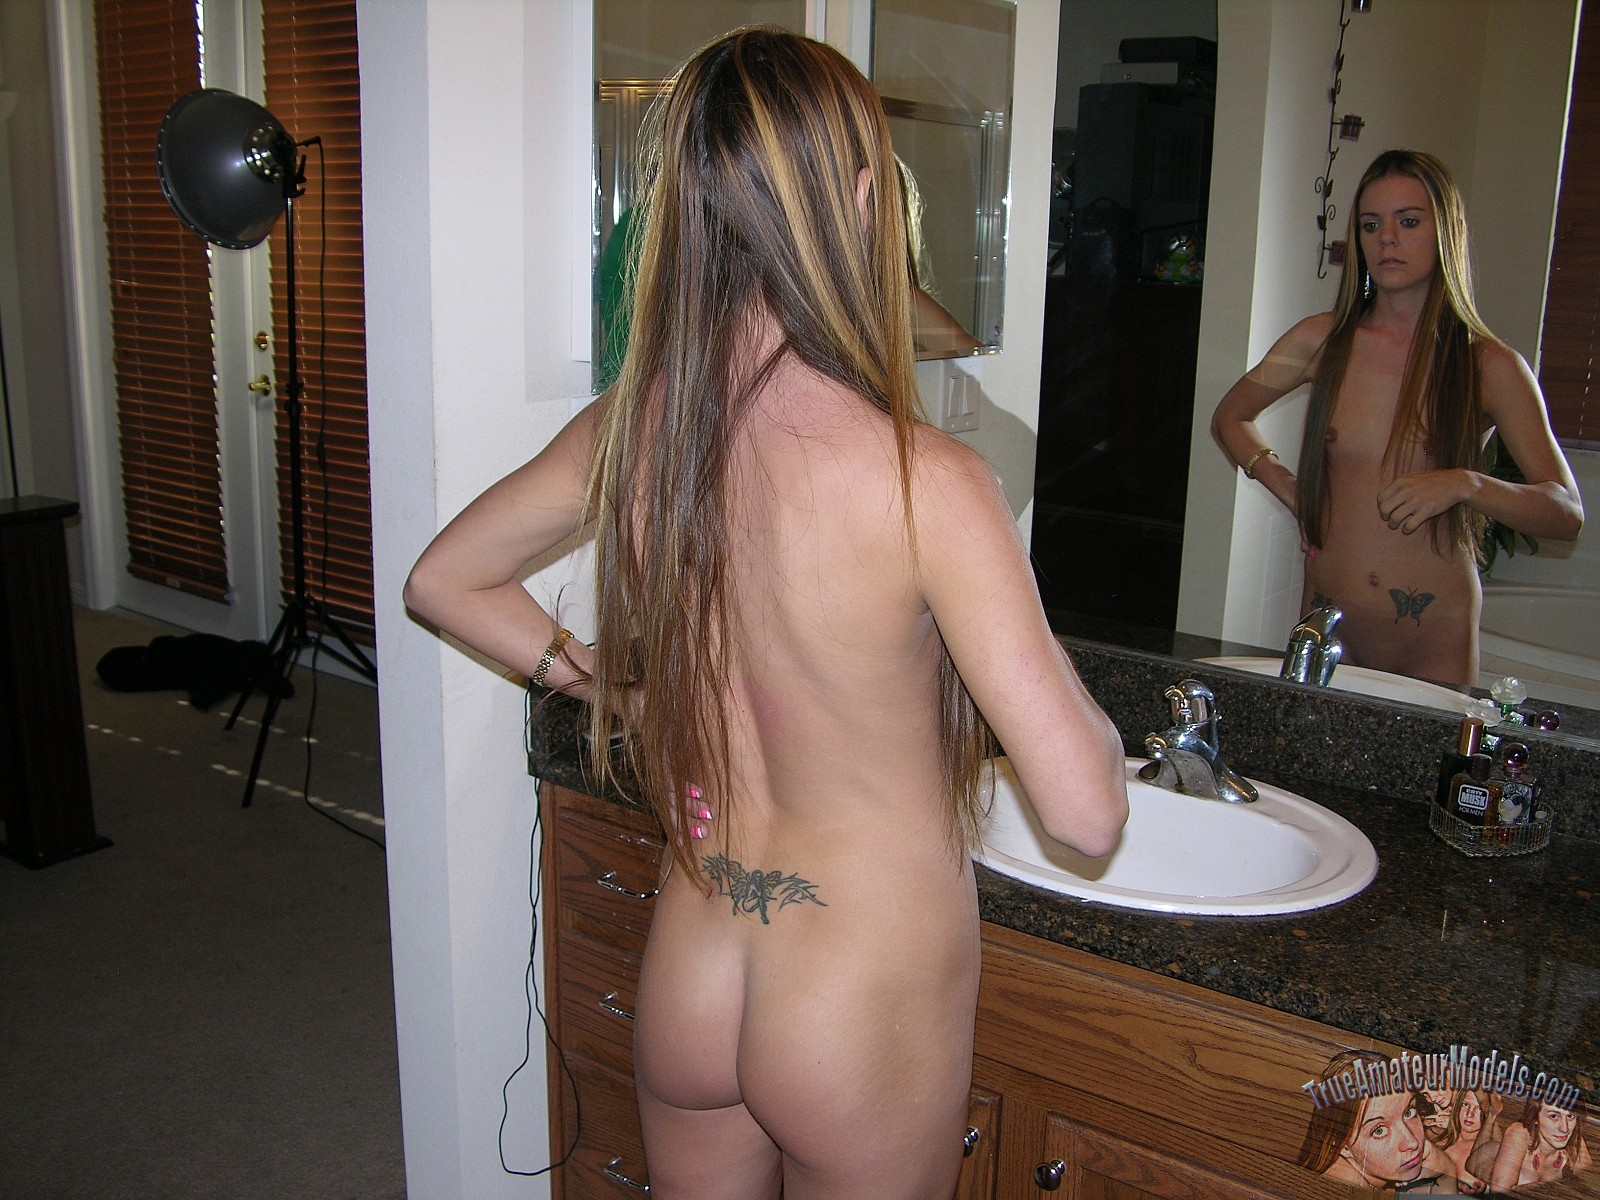 wild hardcore mature nude dallas